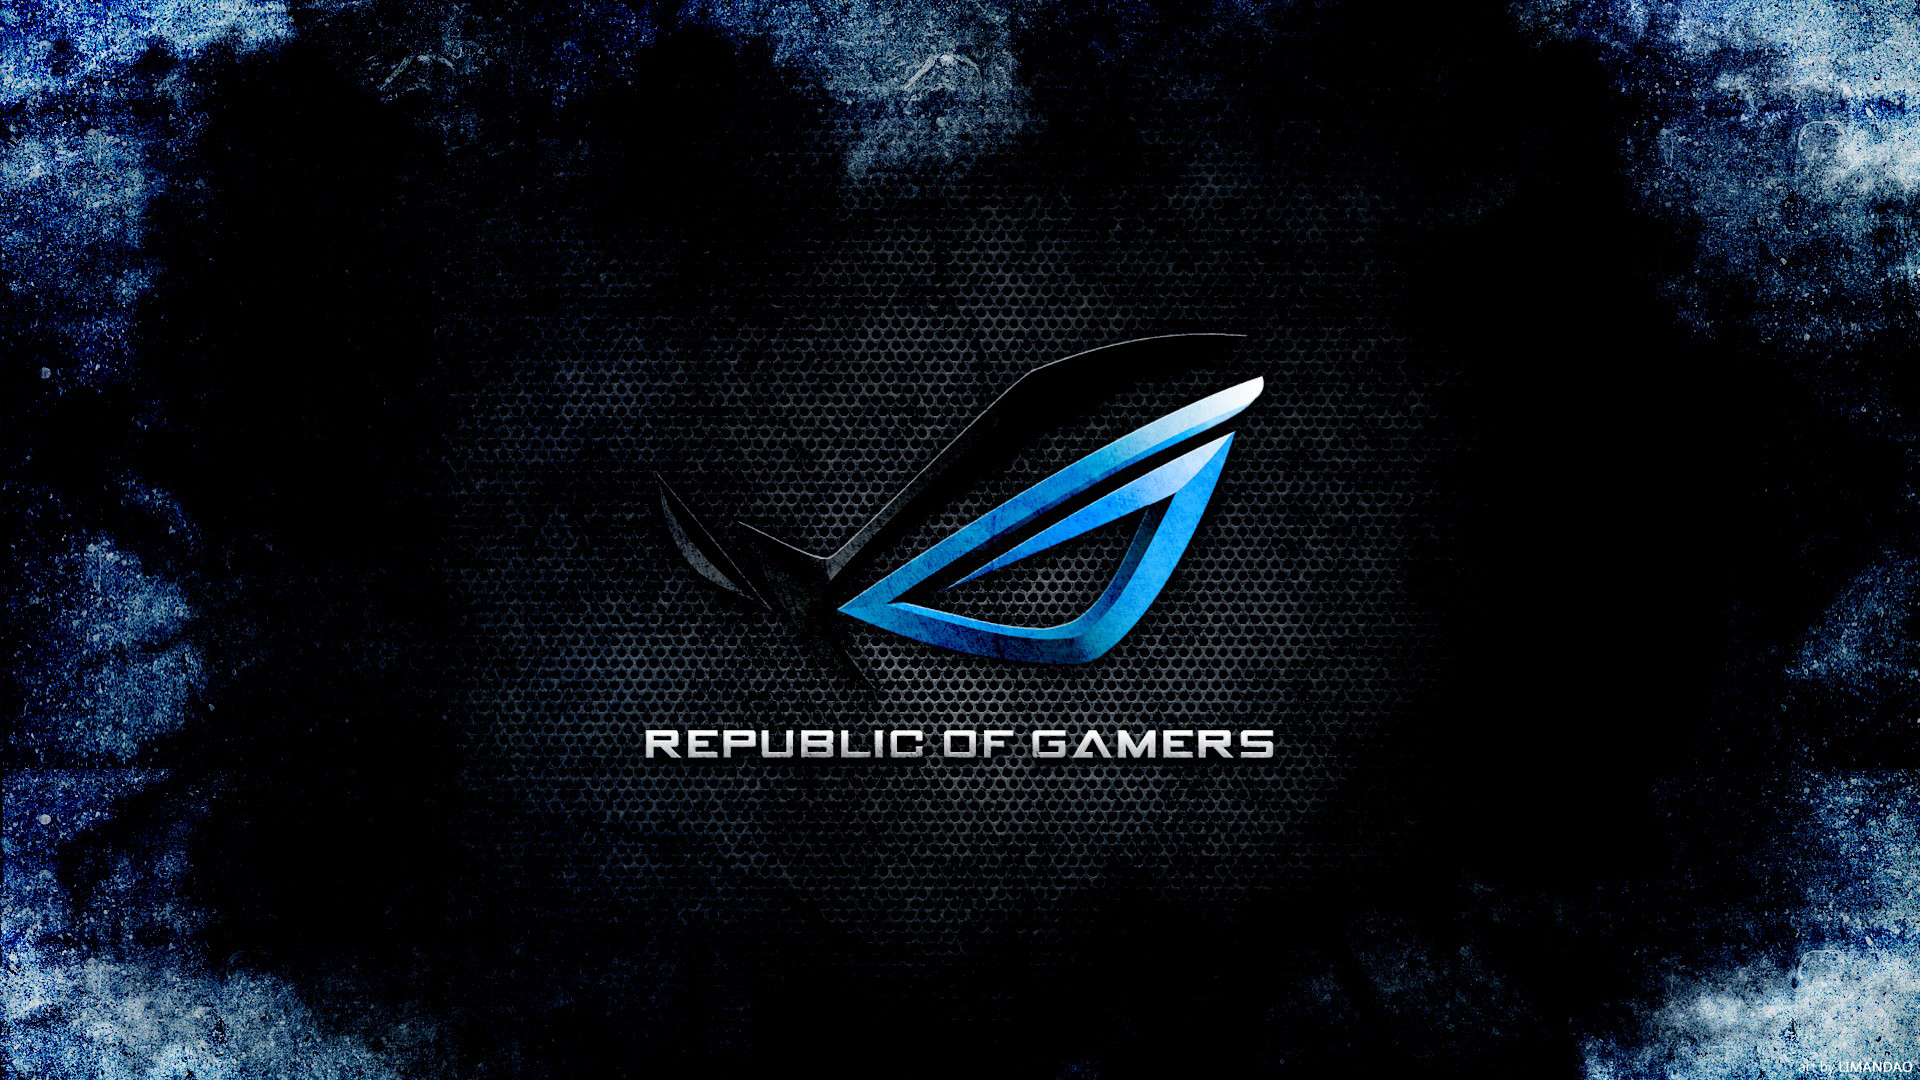 Republic of Gamers Dark Blue 17 Wallpaper HD 1920x1080